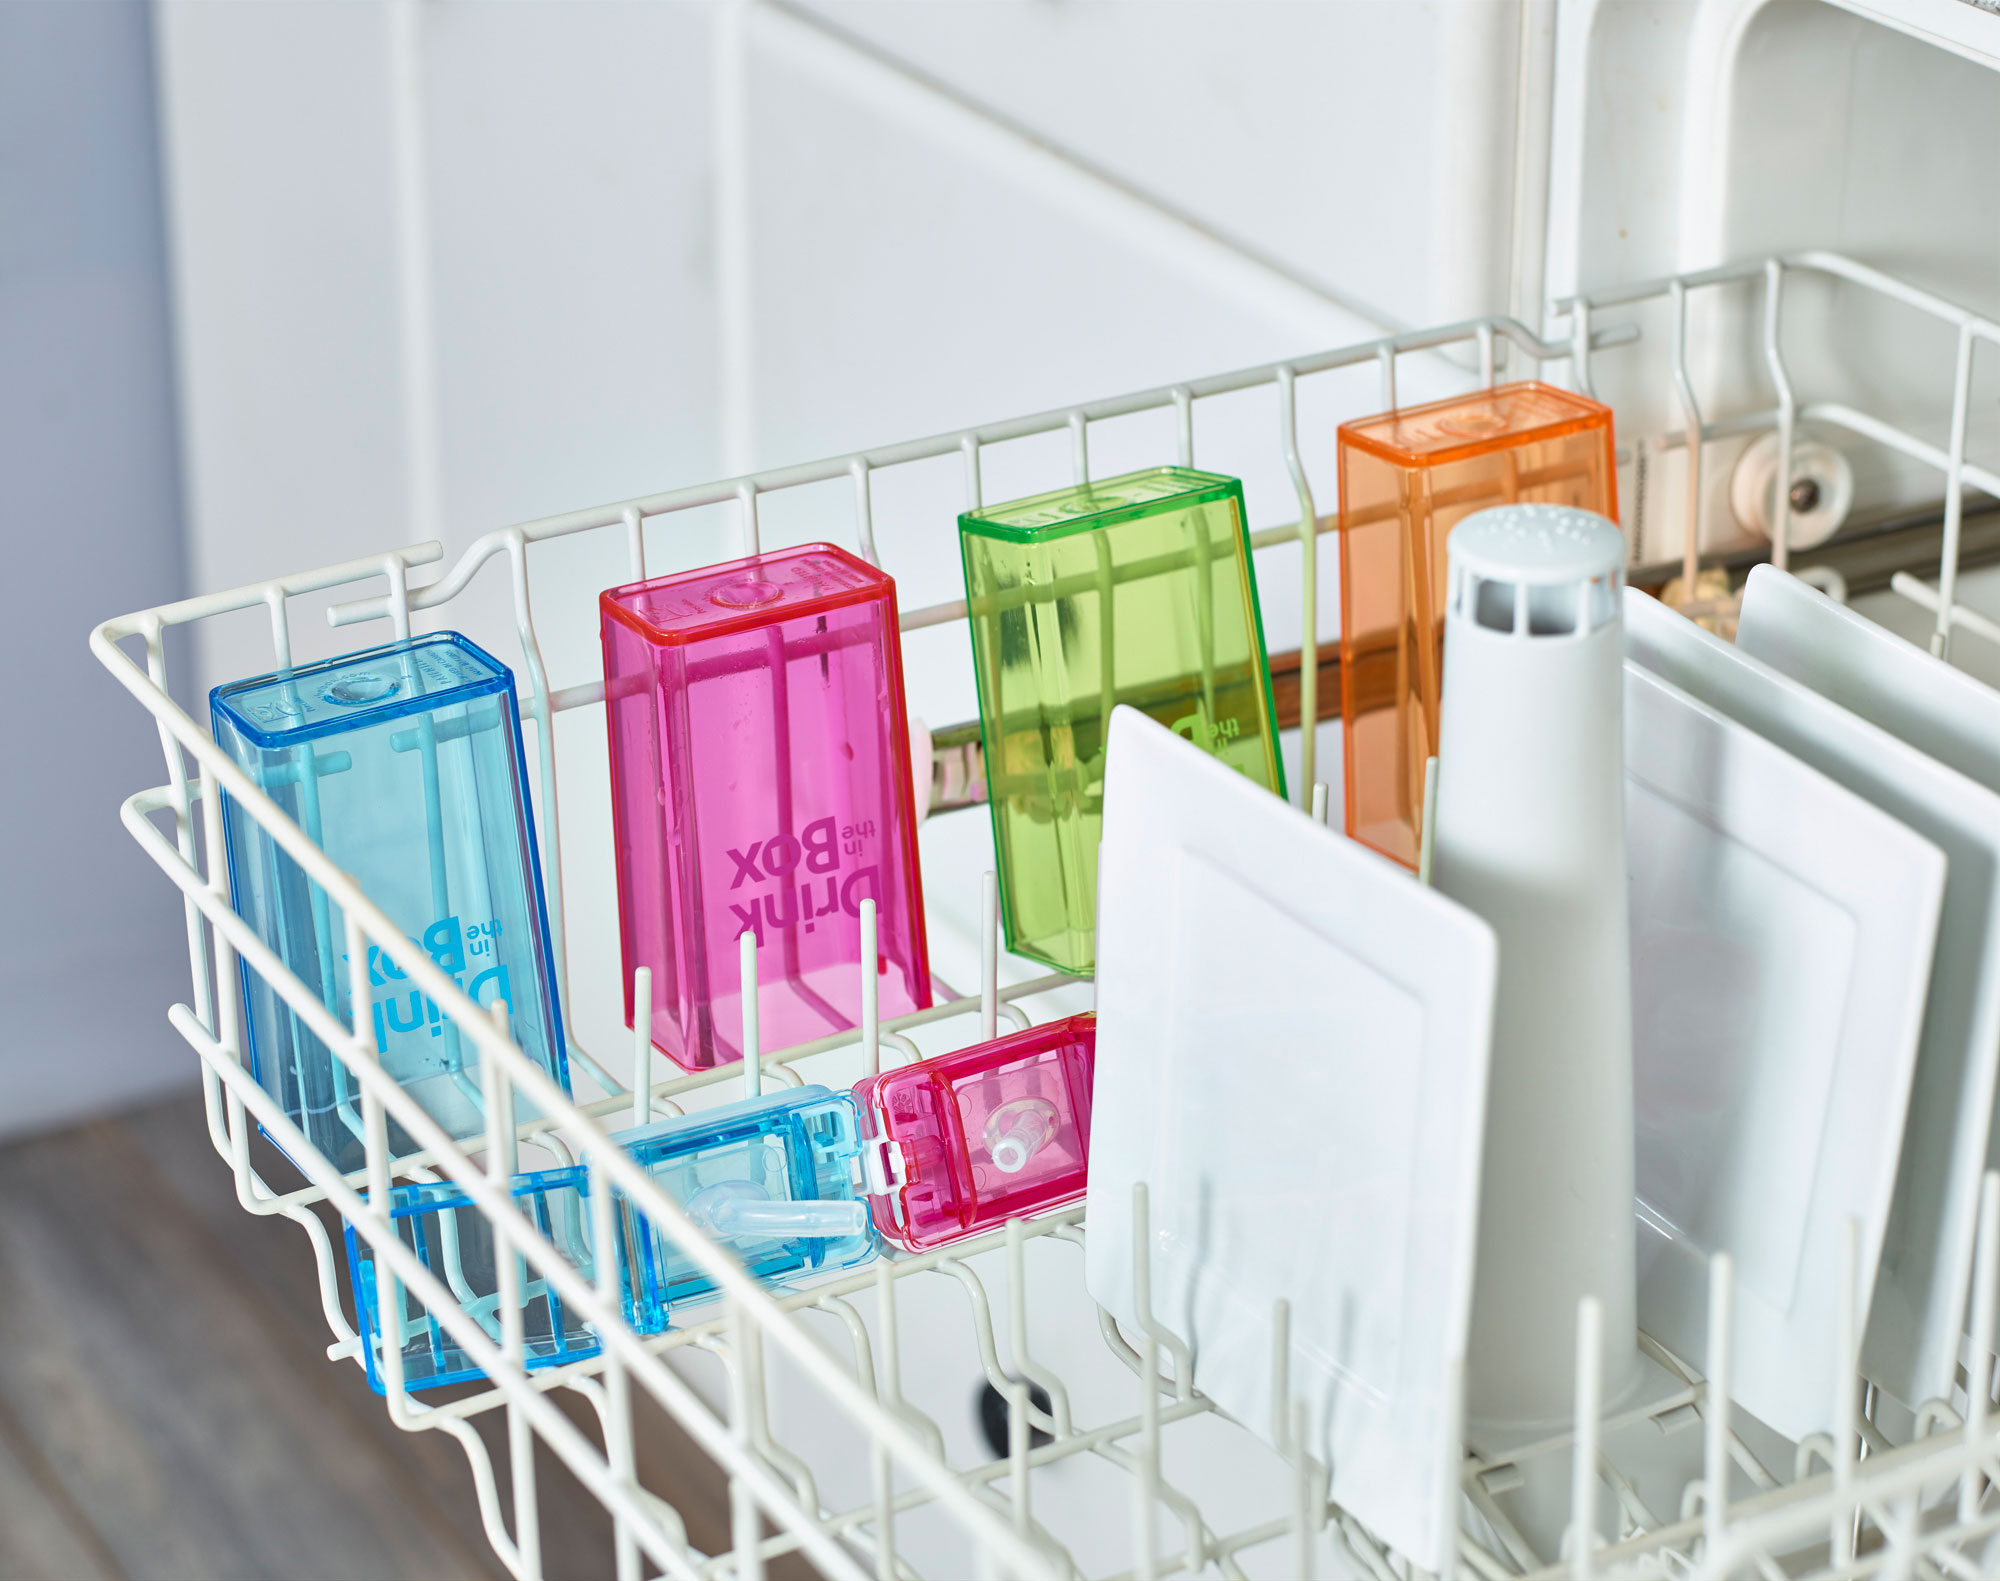 Collection-in-Dishwasher_